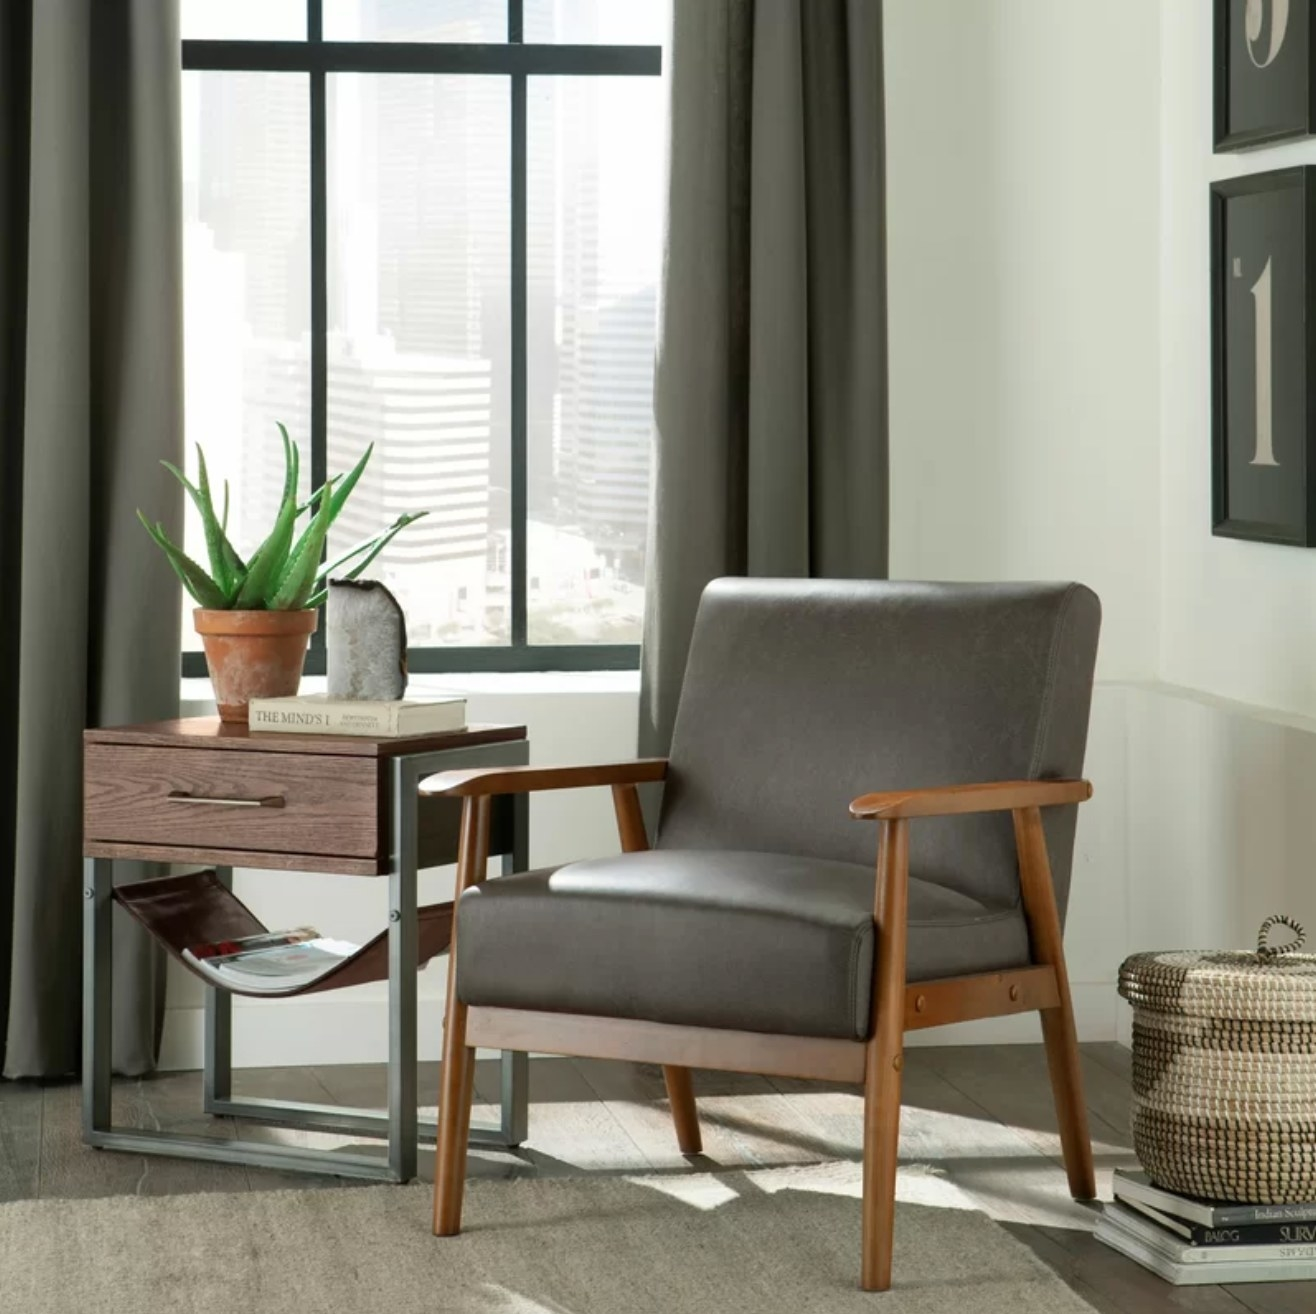 The arm chair in the steel polyester blend next to a side table with a plant and geode